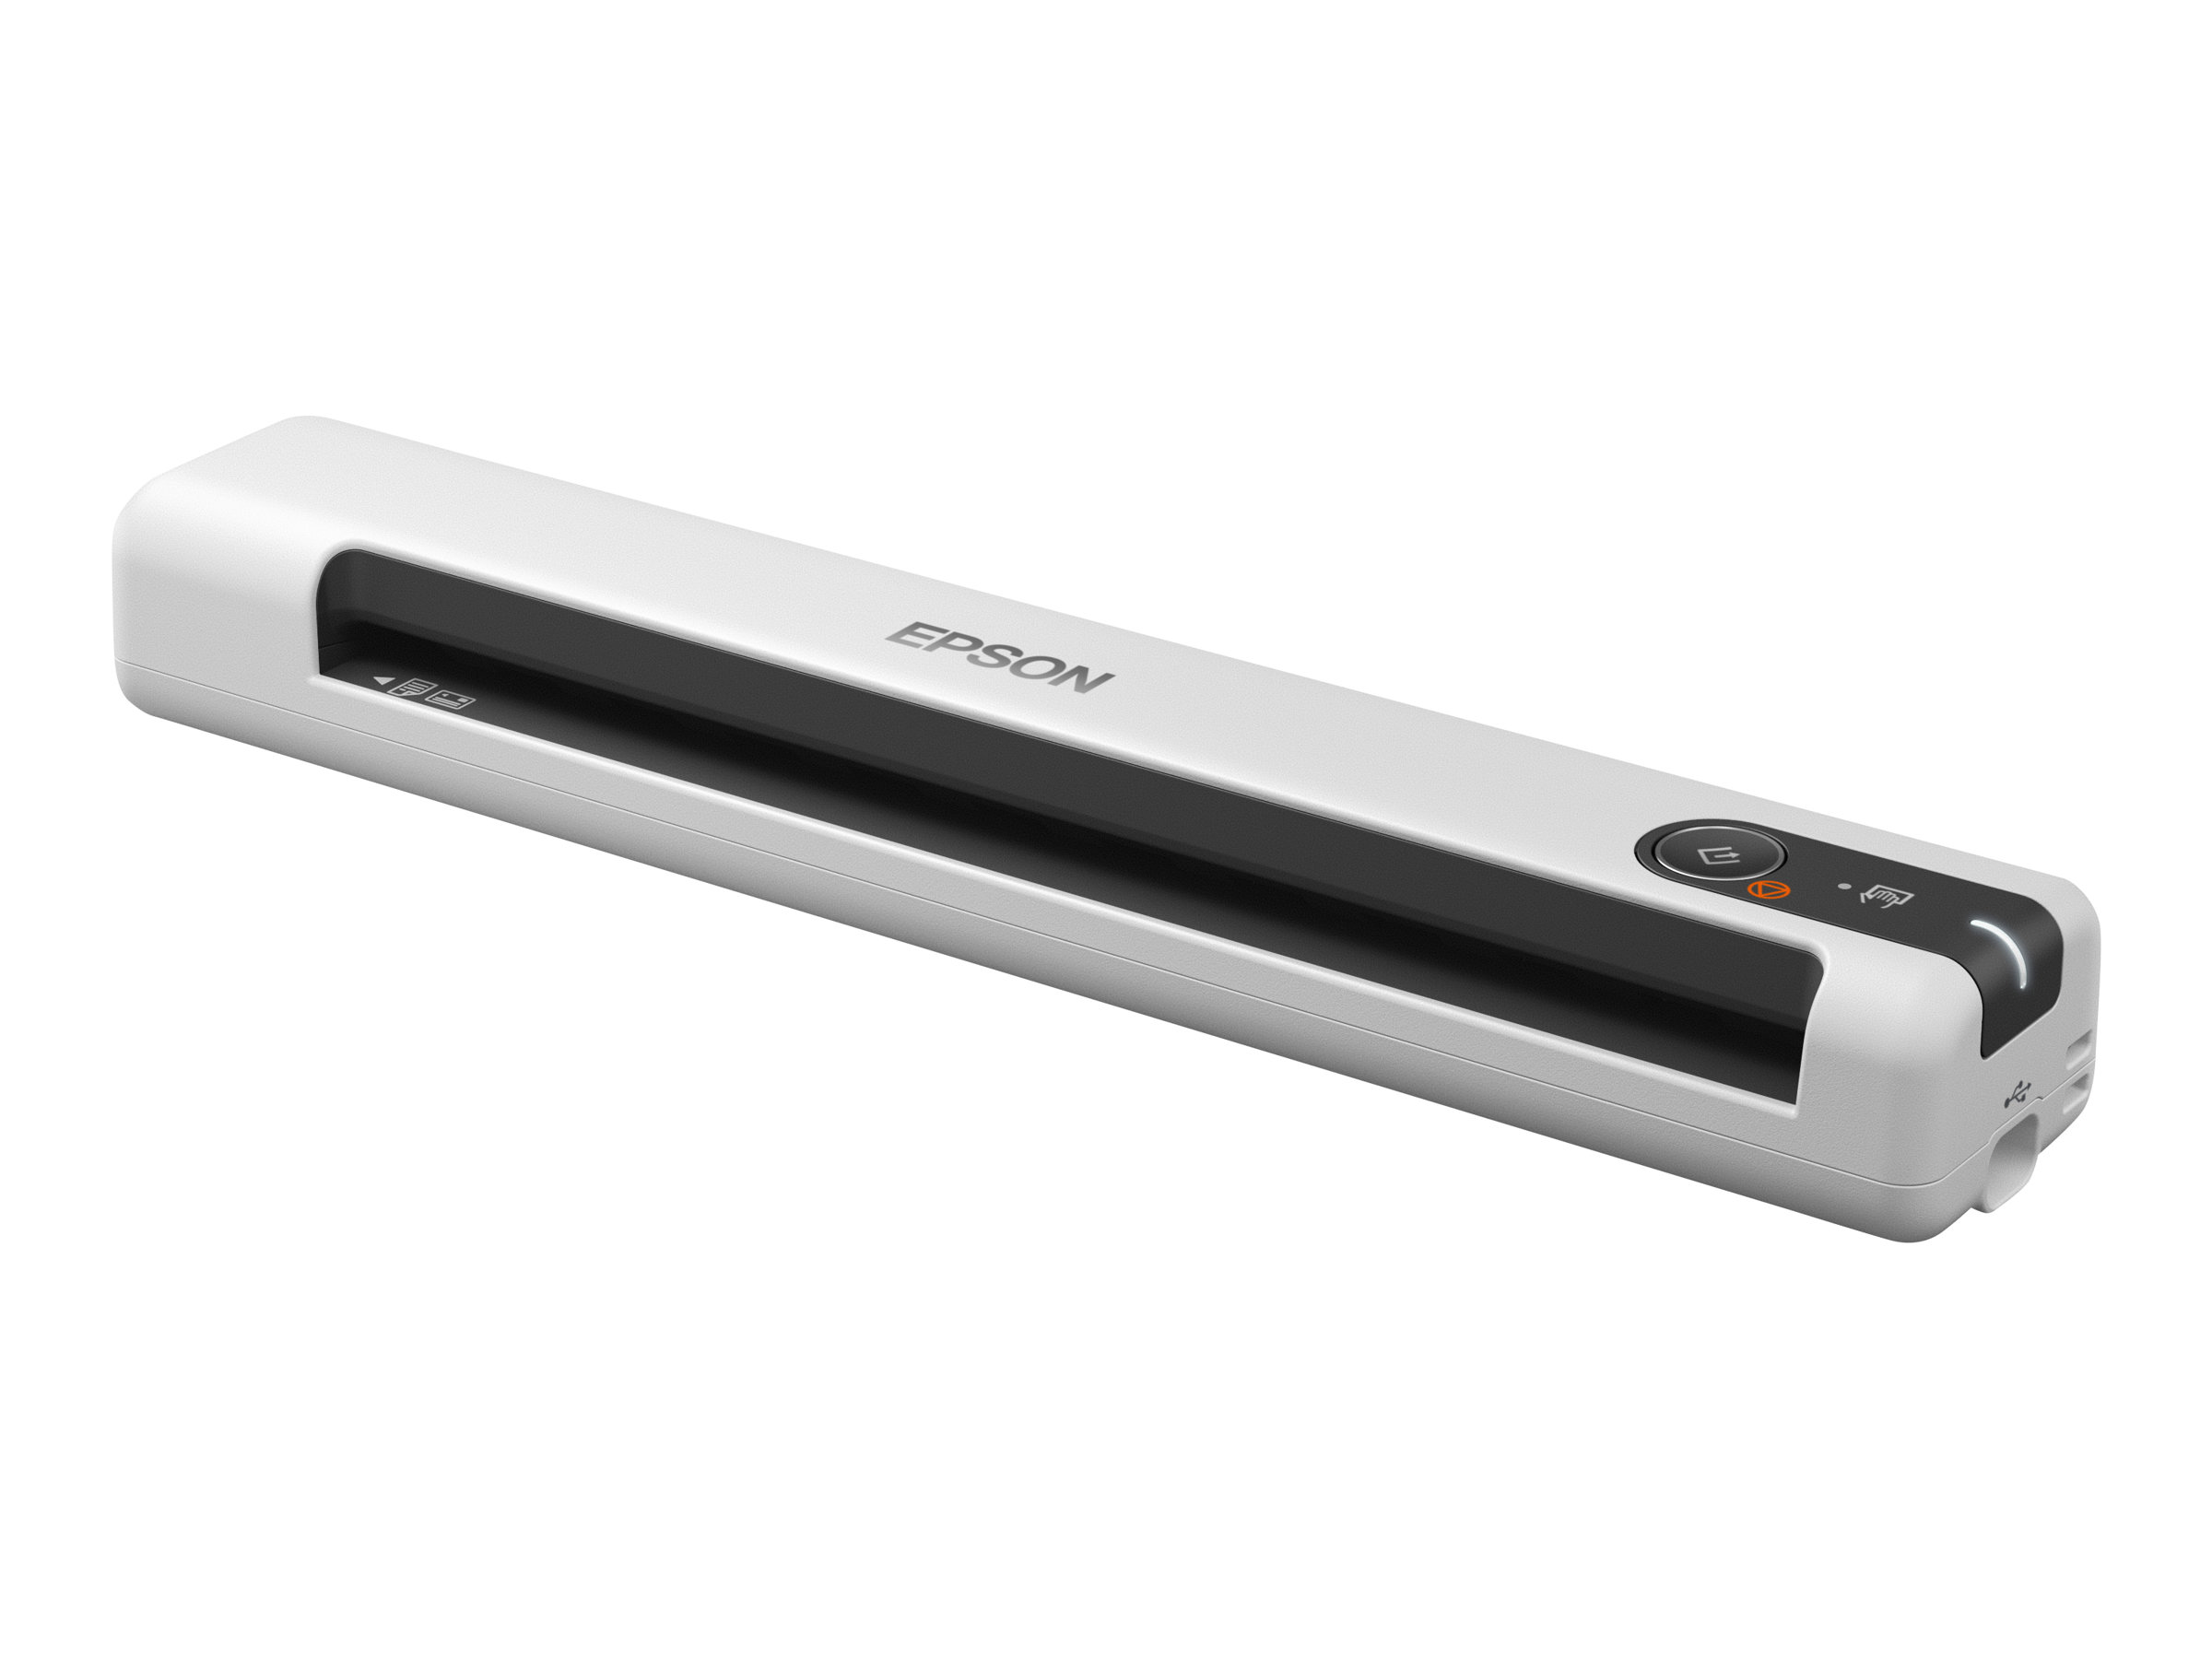 Epson WorkForce DS-70 - Einzelblatt-Scanner - Legal - 600 dpi x 600 dpi - bis zu 300 Scanvorgänge/Tag - USB 2.0